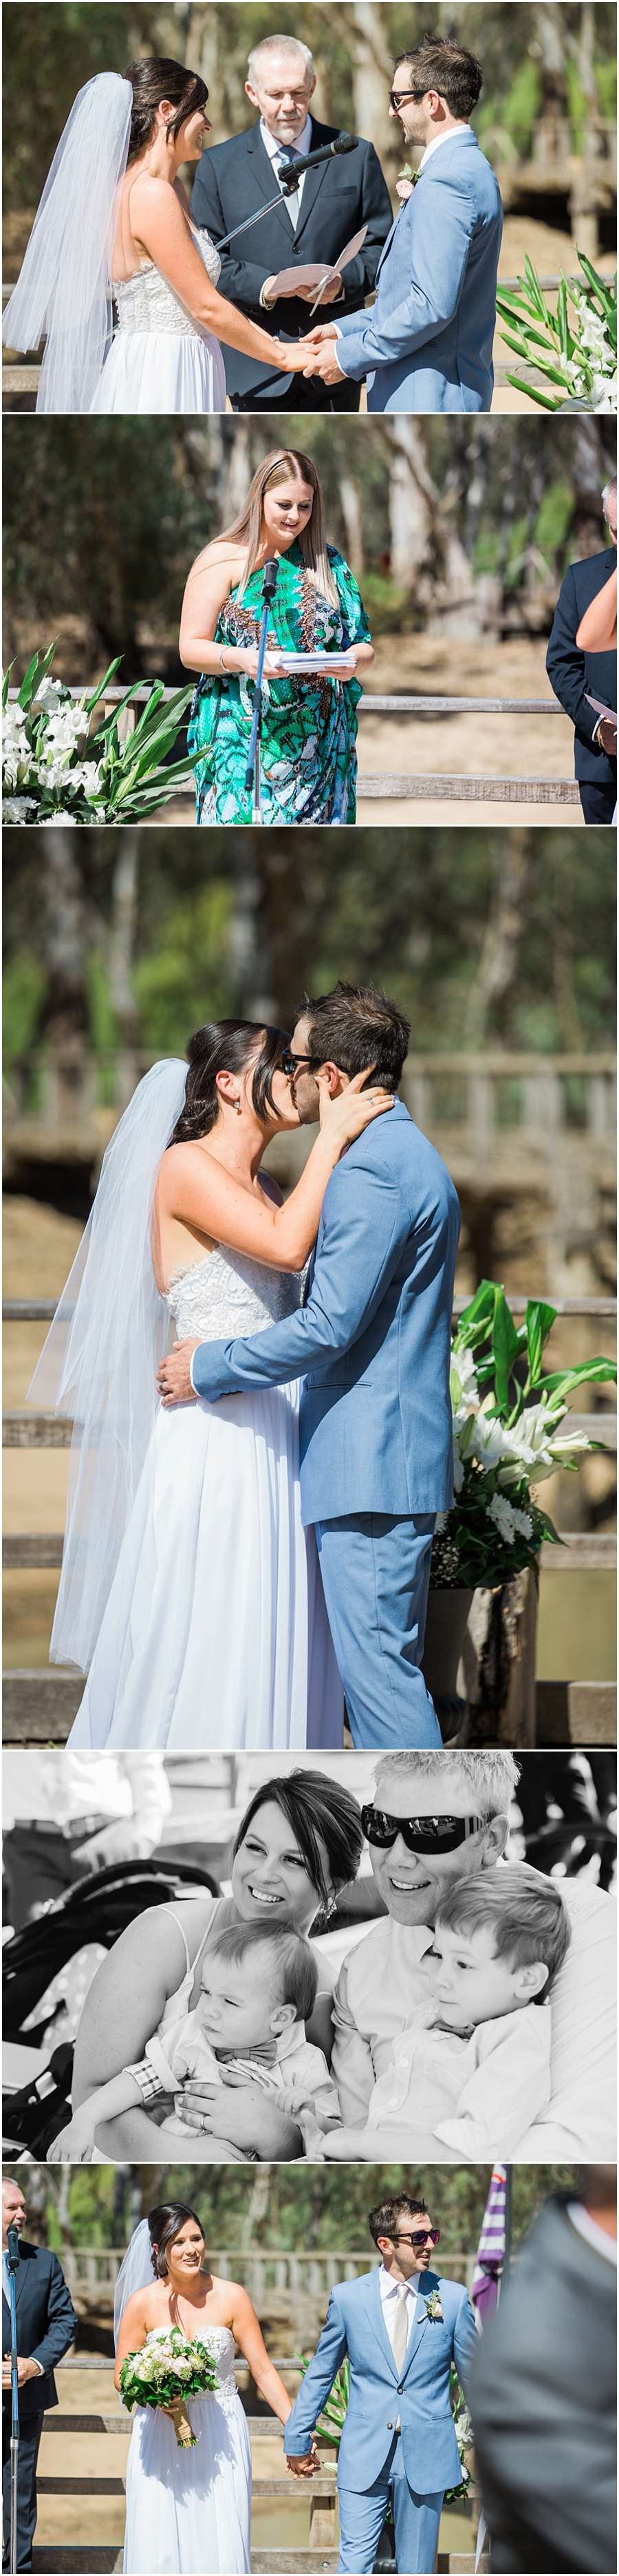 Daylesford Wedding Photographer_0057